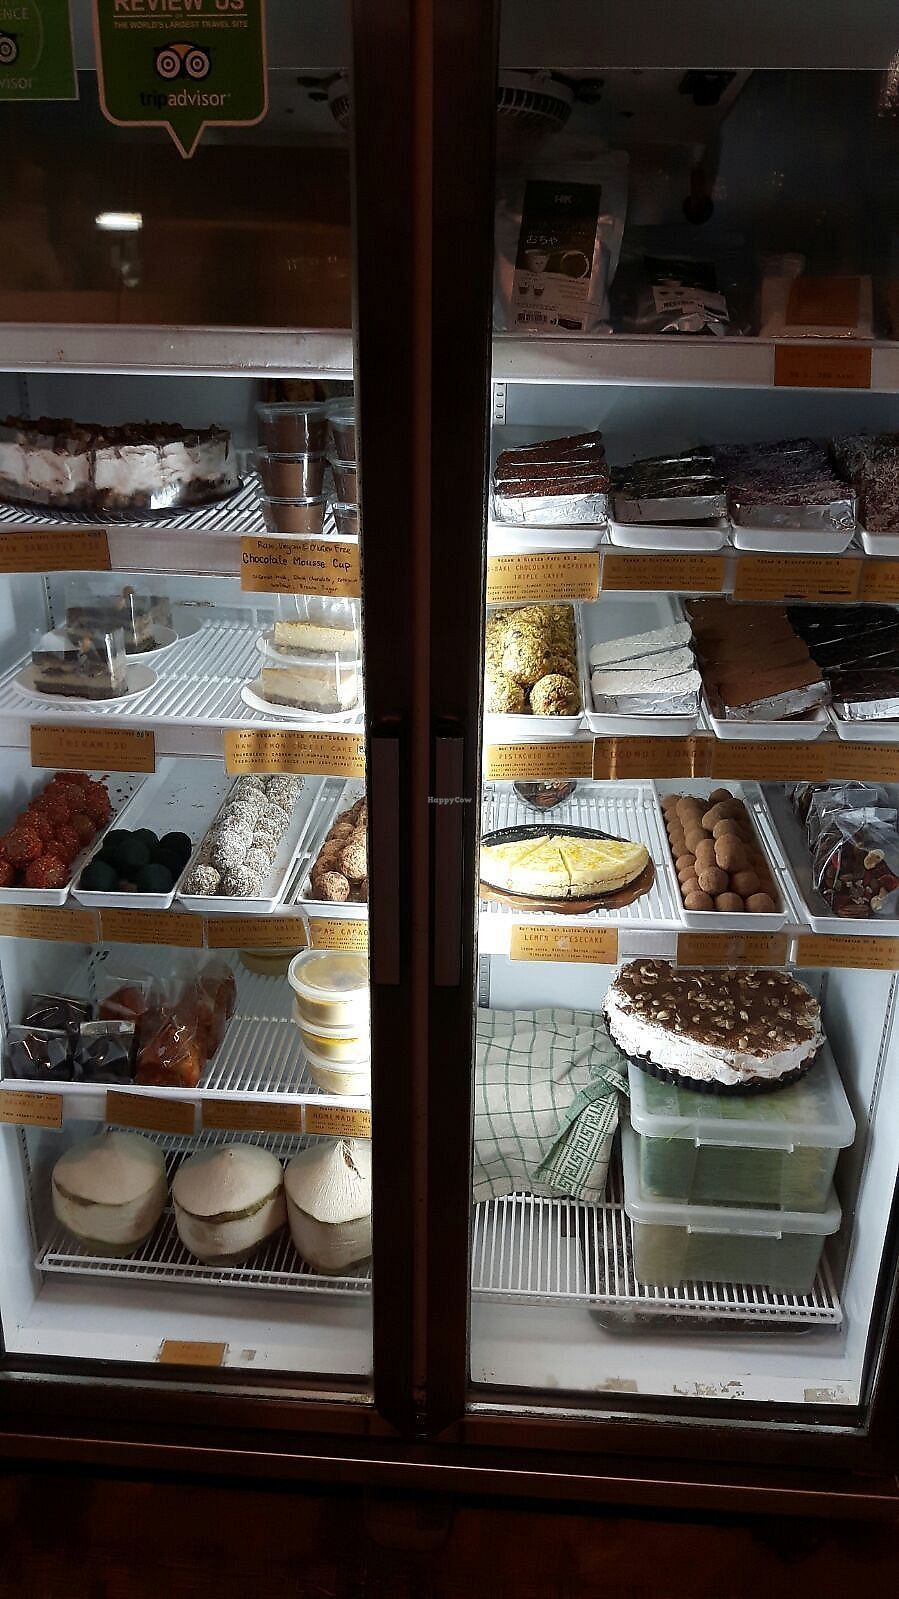 """Photo of Earth Tone  by <a href=""""/members/profile/CharityBosua"""">CharityBosua</a> <br/>Biggest part of their sweets. Mostly vegan.  <br/> January 7, 2018  - <a href='/contact/abuse/image/34371/344007'>Report</a>"""